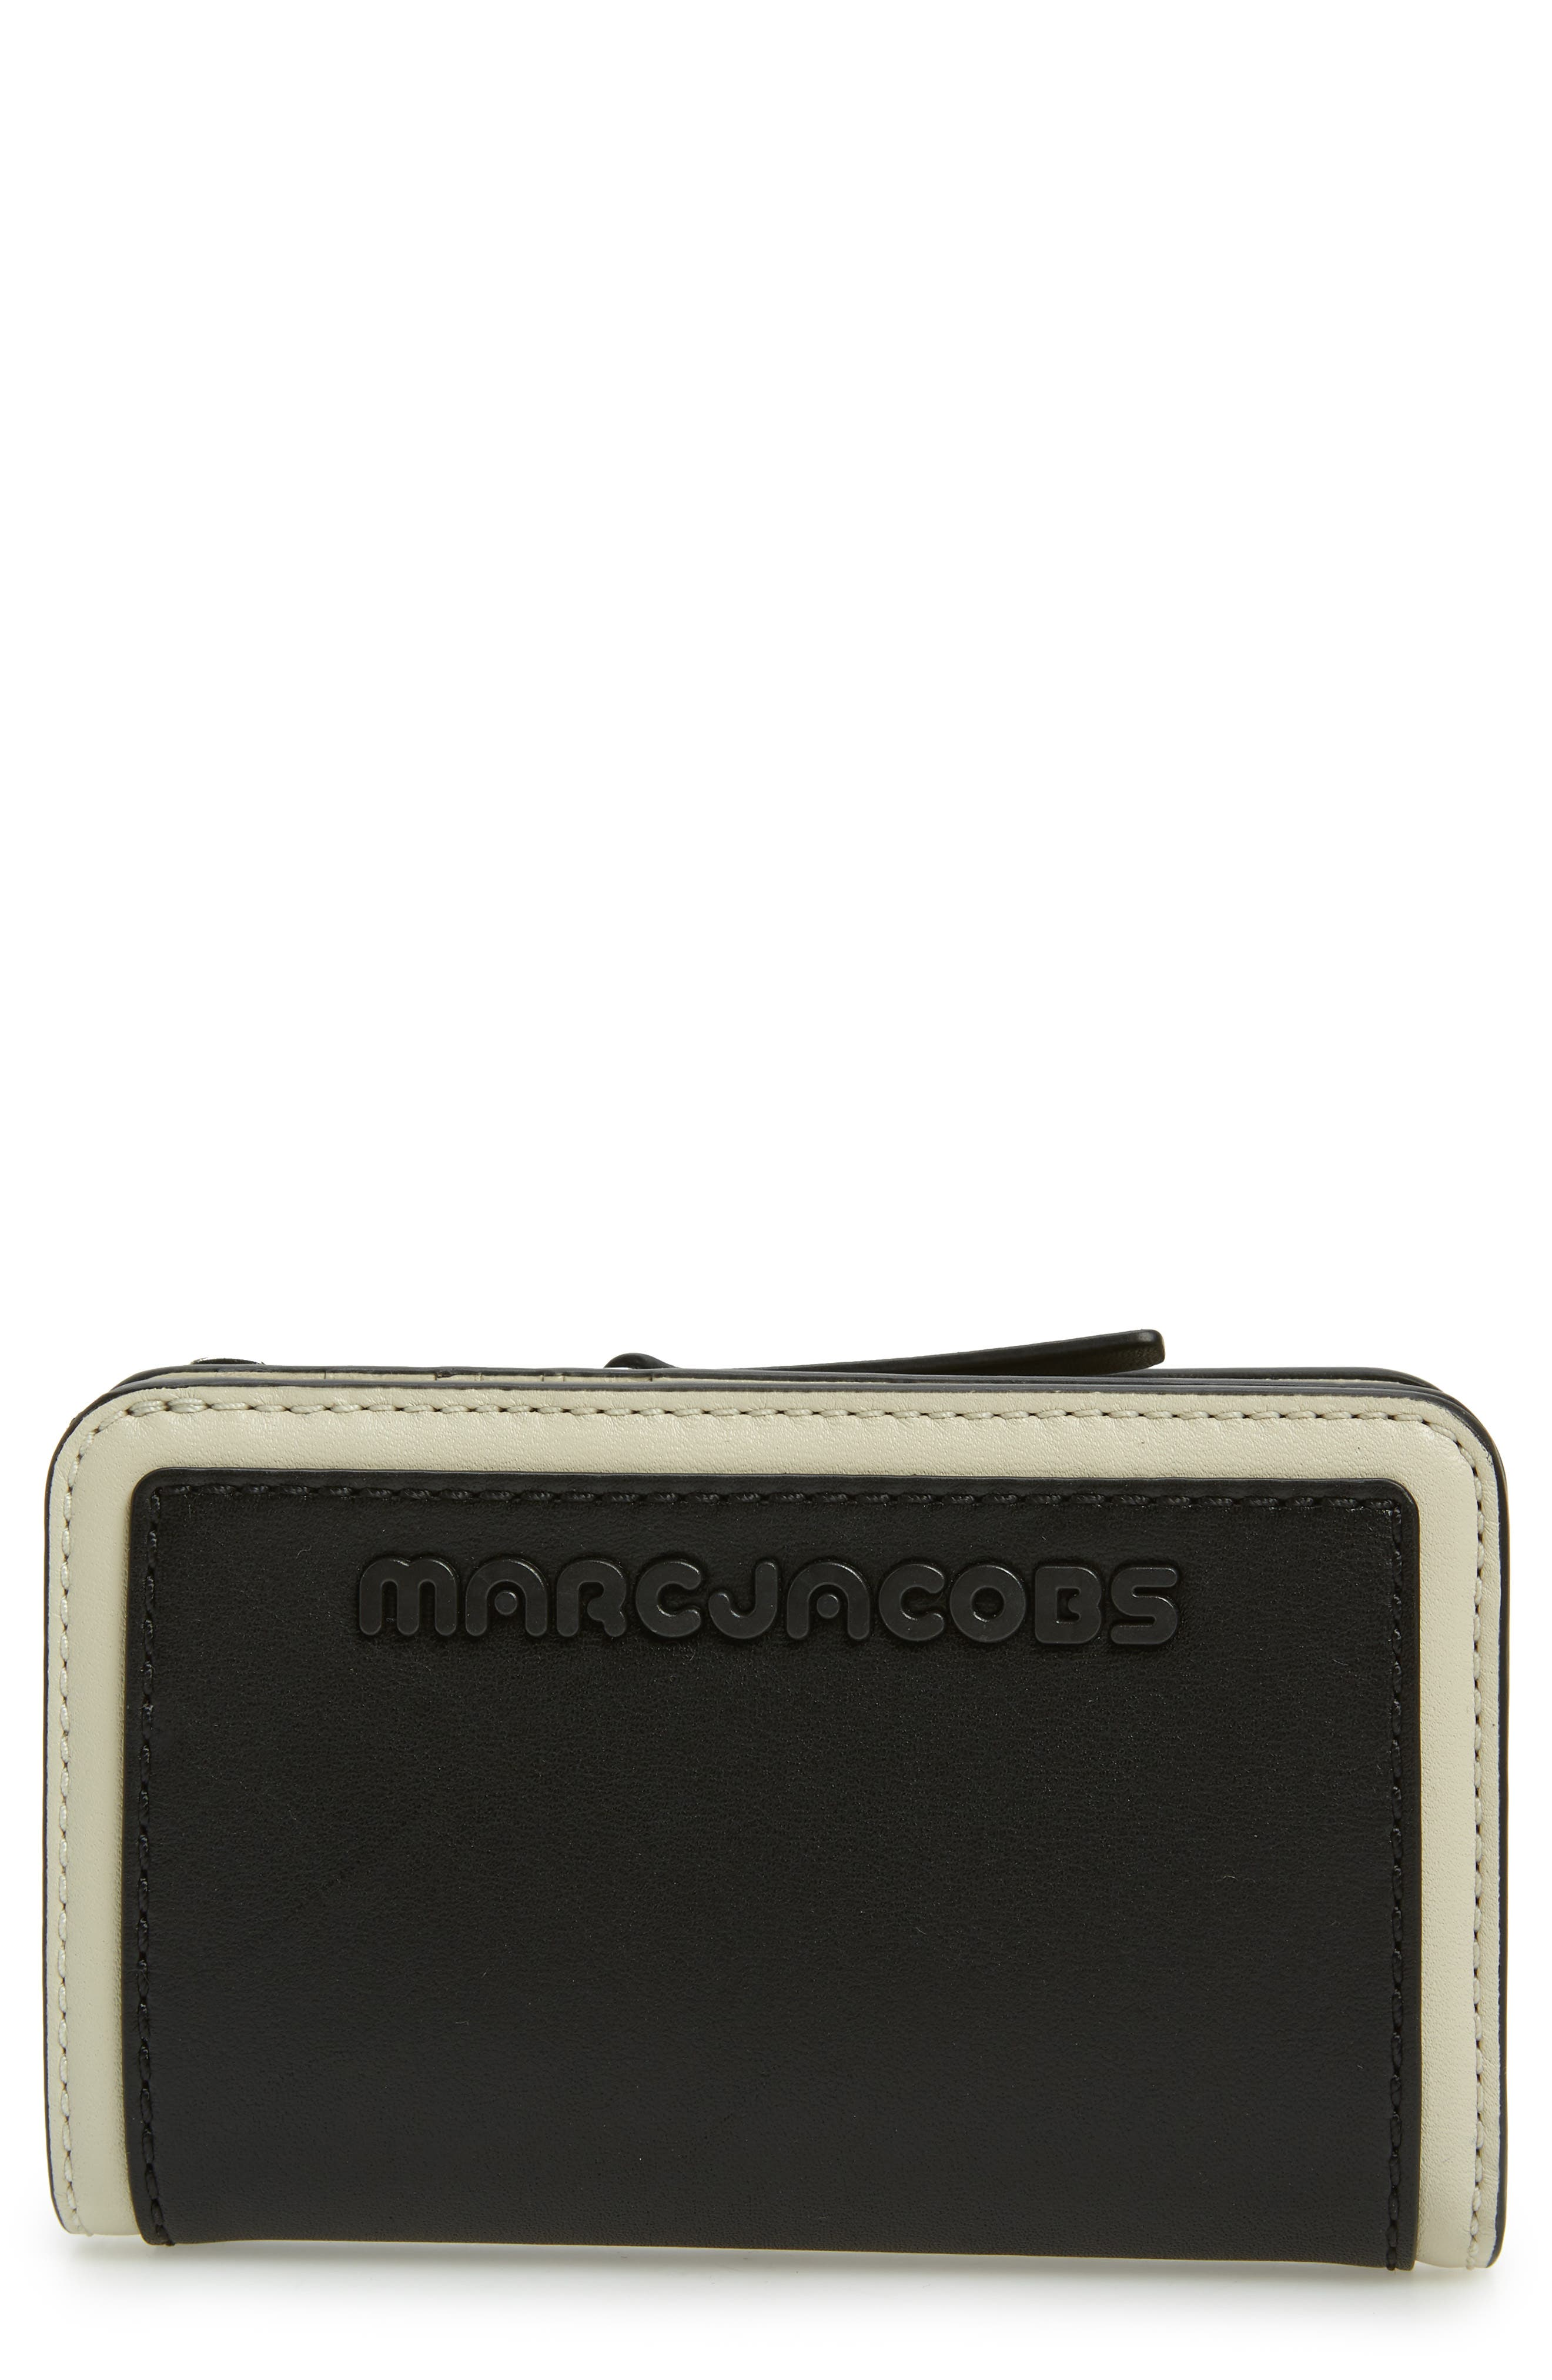 Sport Compact Leather Wallet,                         Main,                         color, BLACK/ WHITE